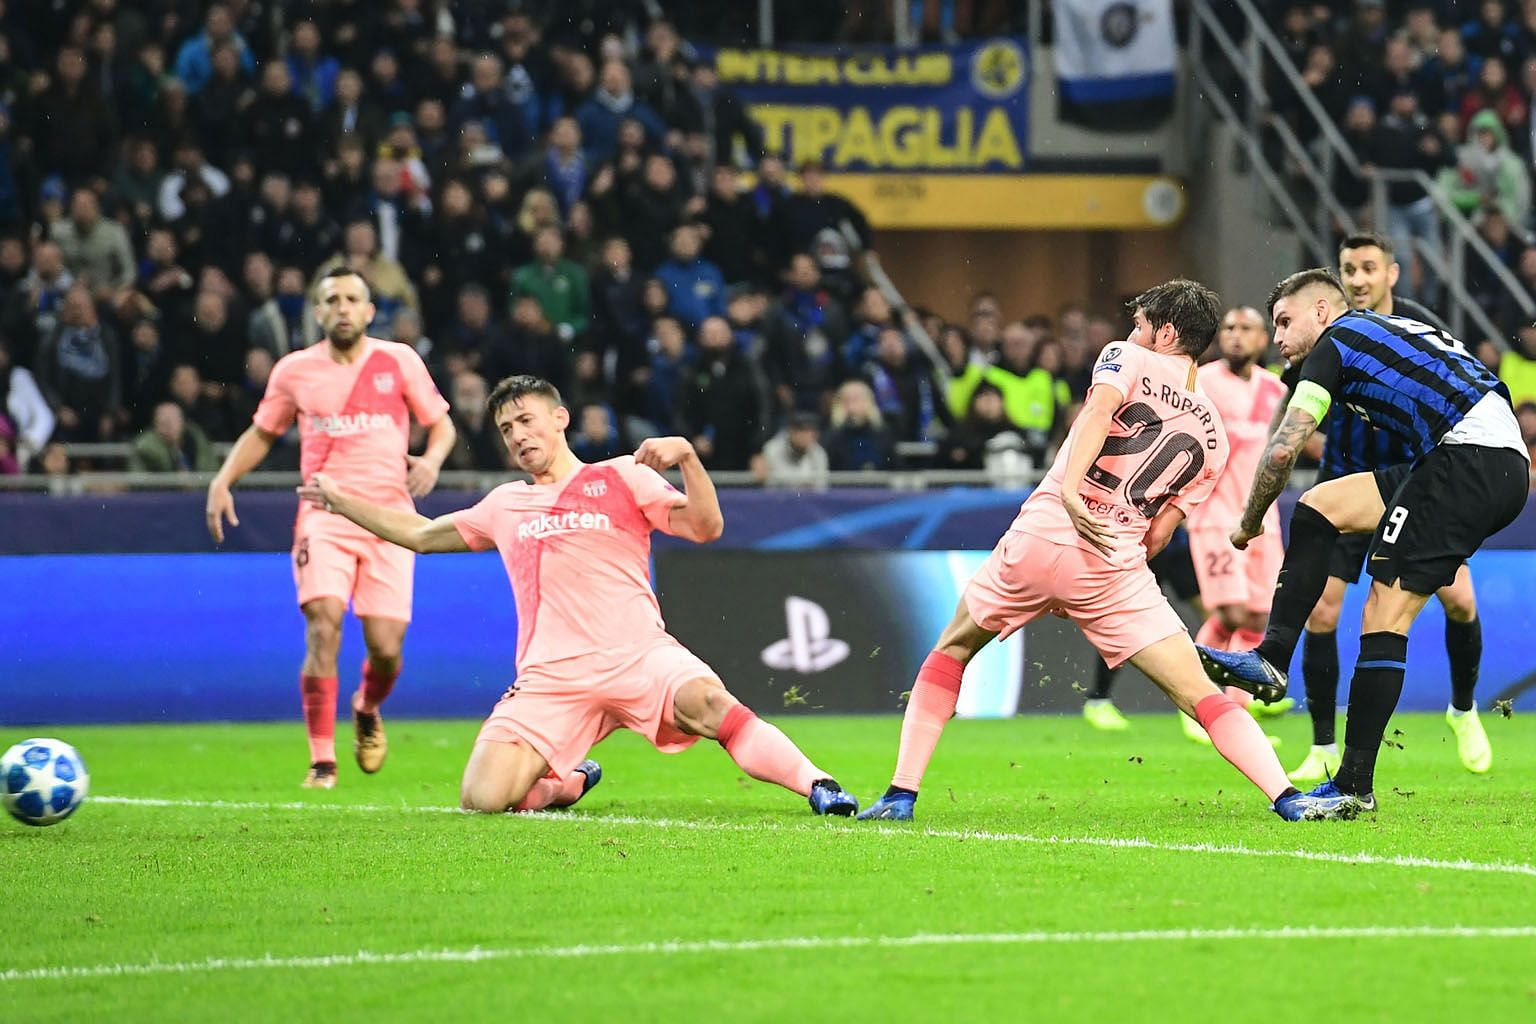 Inter forward Mauro Icardi equalising in the 87th minute against Barcelona at the San Siro. The Spanish giants are through to the Champions League last 16 while Inter need only a point to join them.